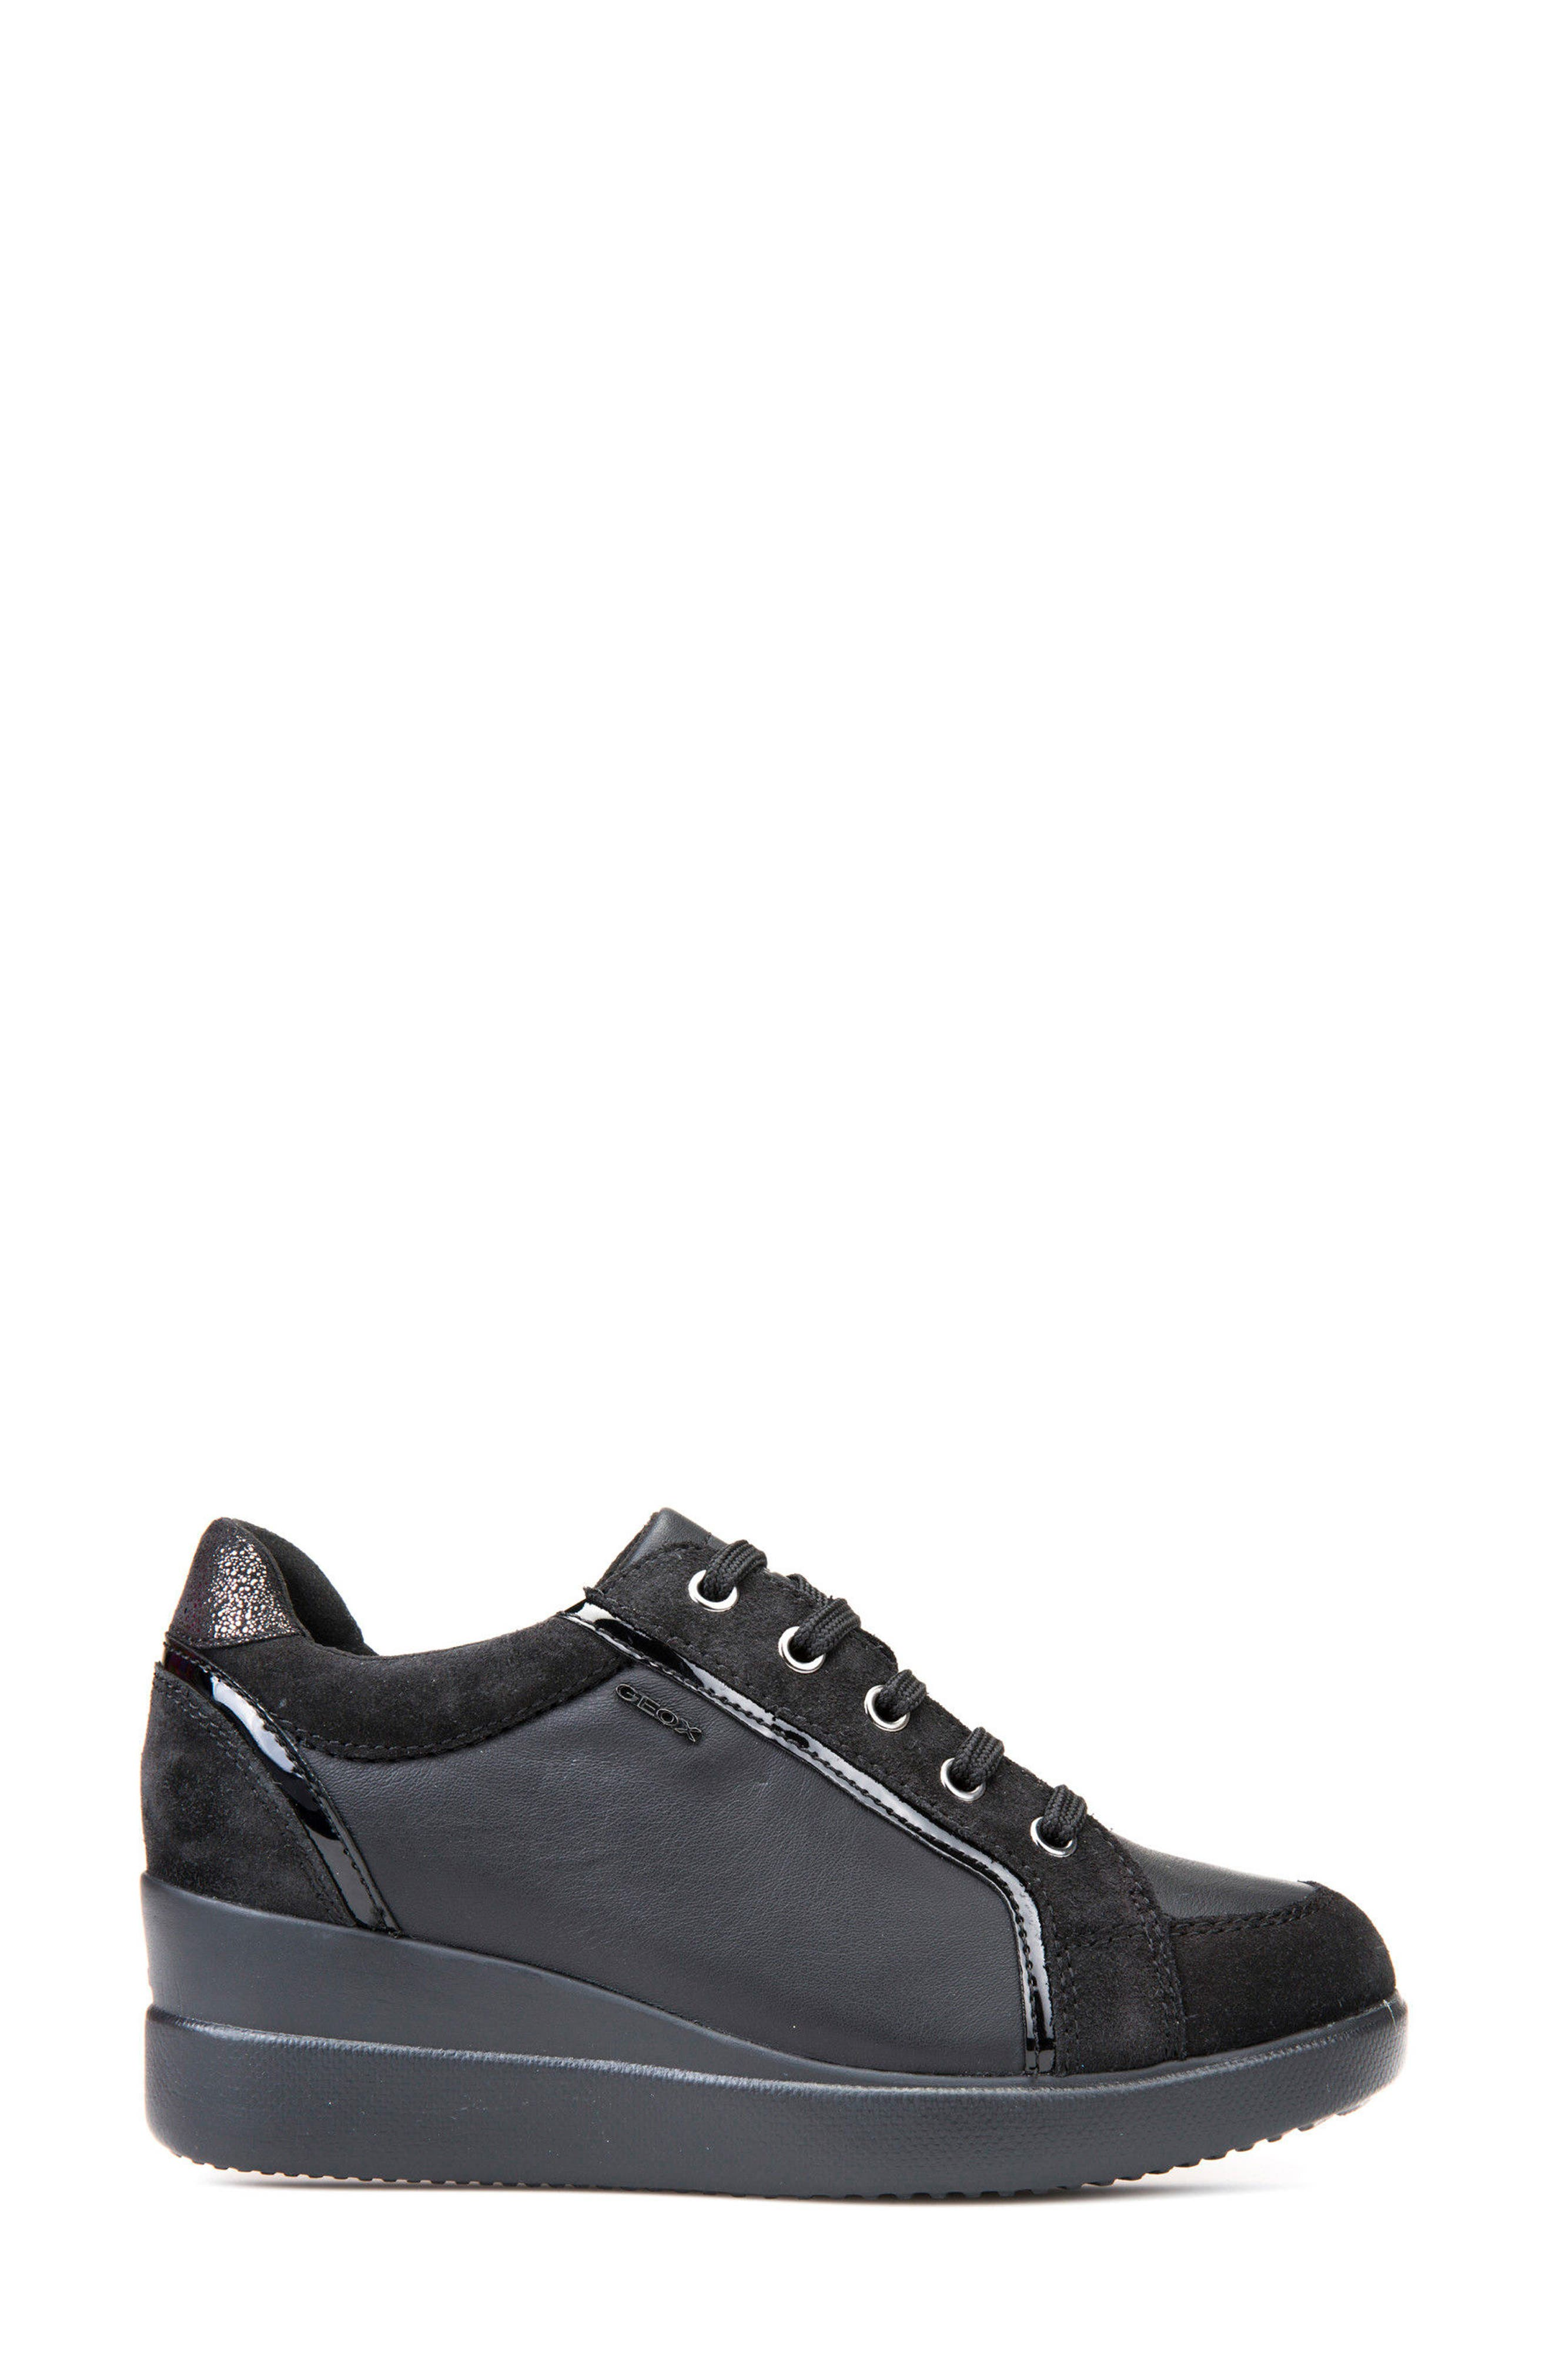 Stardust Wedge Sneaker,                             Alternate thumbnail 3, color,                             Black Leather